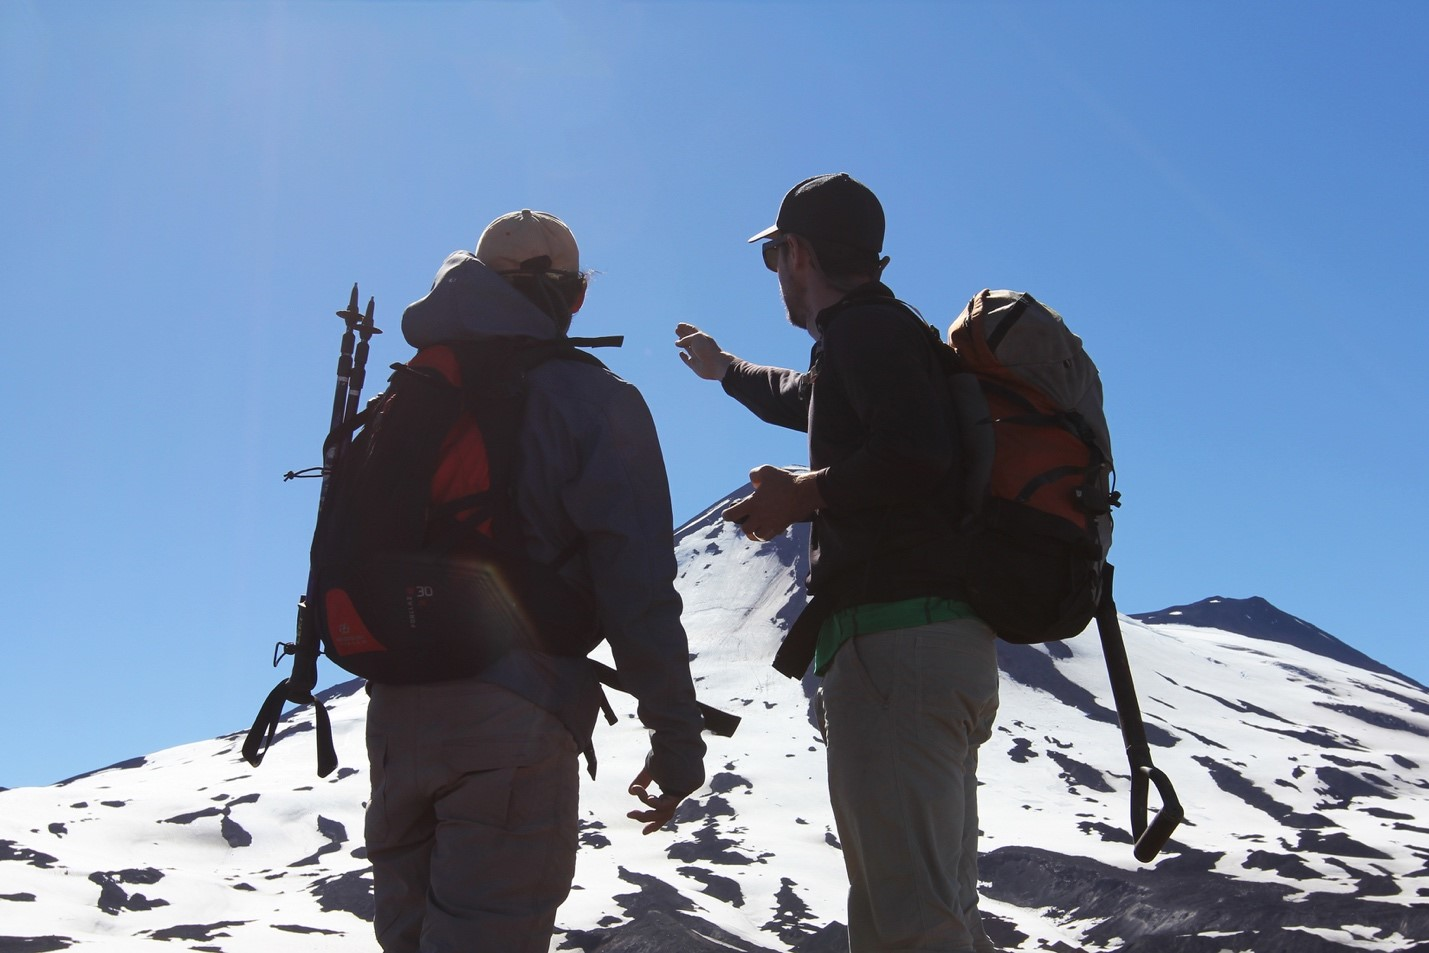 two men wearing hiking backs look up at an active volcano